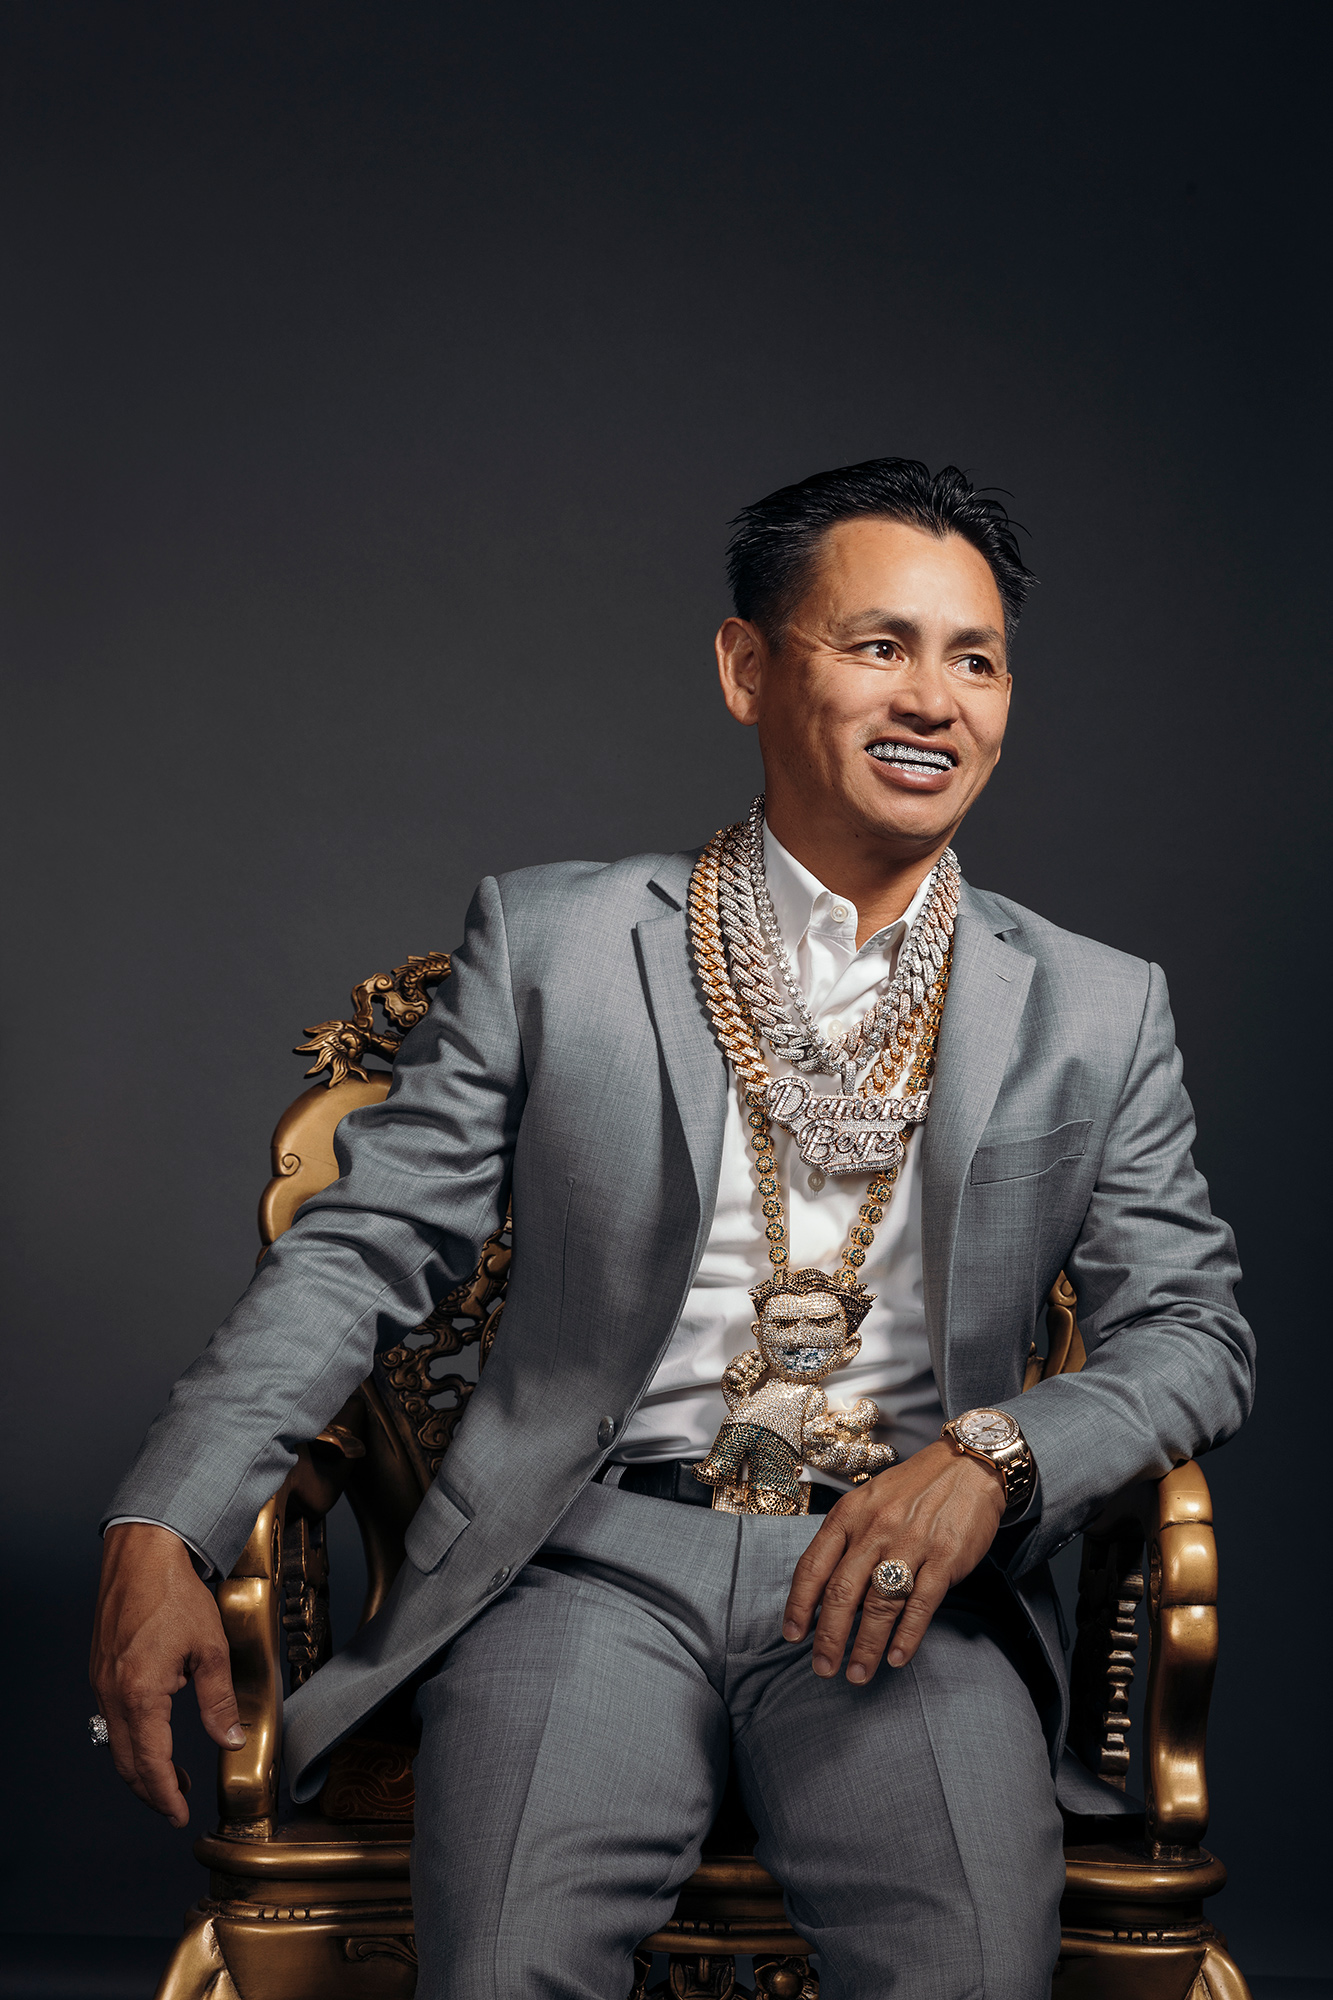 "Johnny ""TV Johnny"" Dang, celebrity jeweler and owner of Johnny Dang & Co, photographed in his office at Johnny Dang & Co headquarters, by Houston editorial and commercial photographer, Todd Spoth."